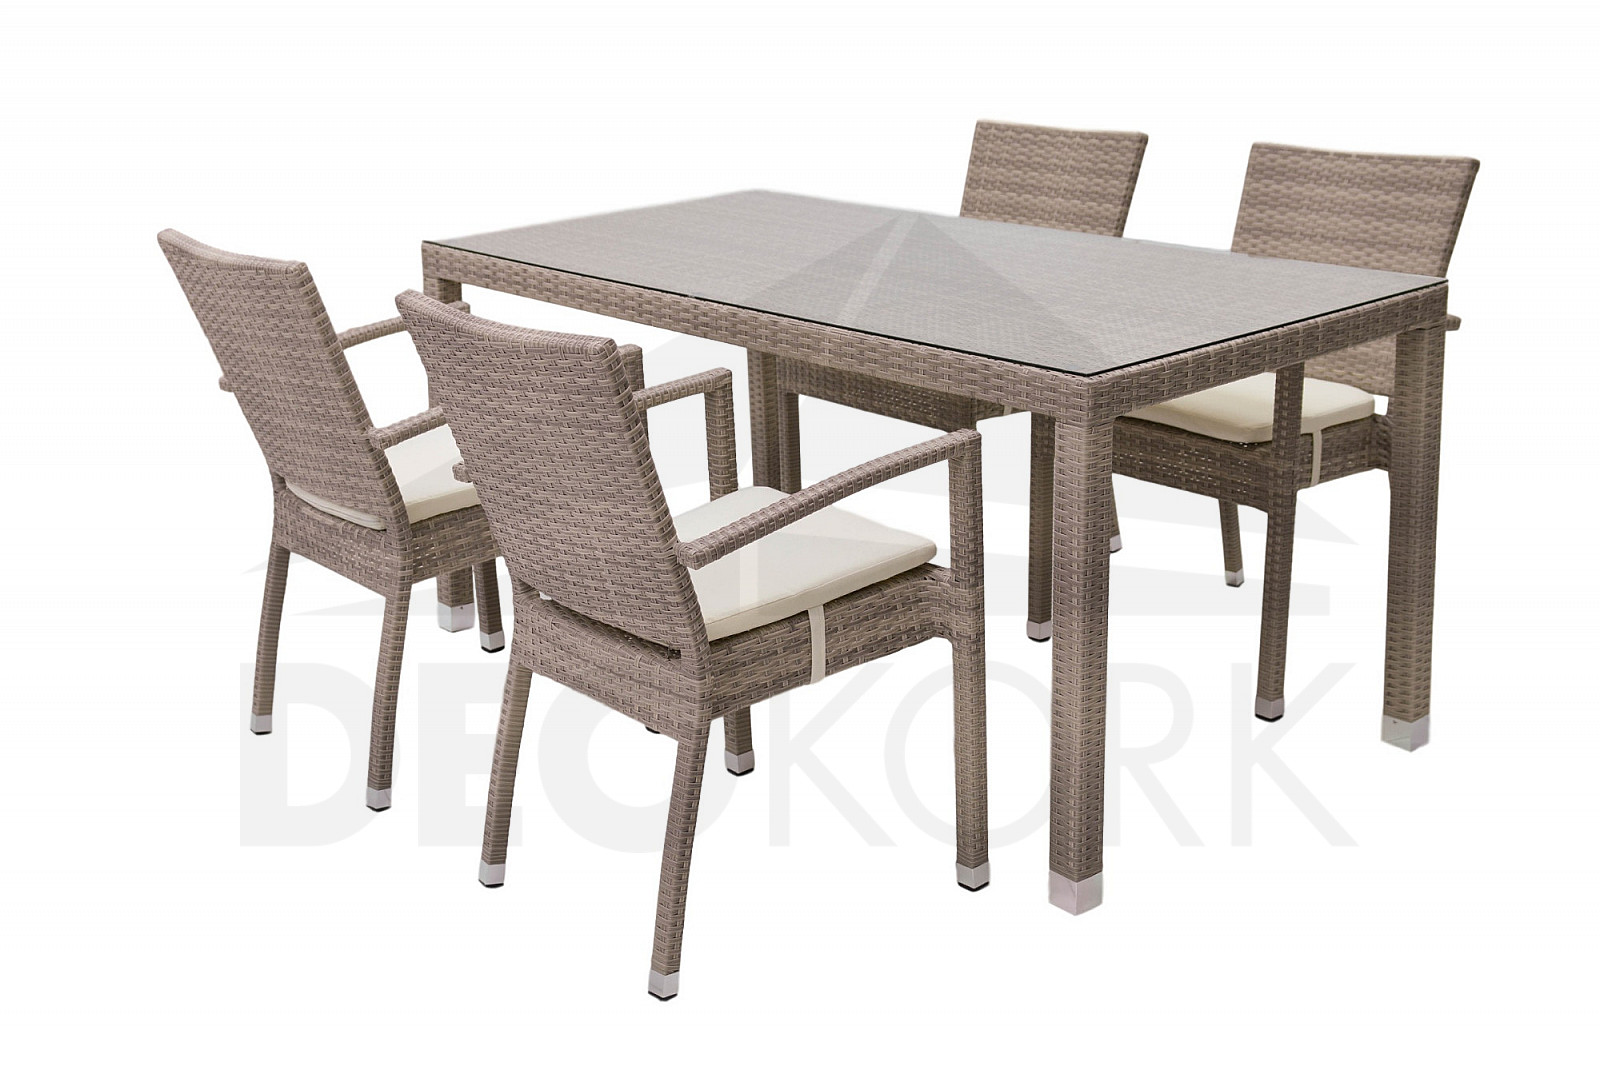 gartenm belset aus polyrattan napoli ii 1 4 grau beige i. Black Bedroom Furniture Sets. Home Design Ideas